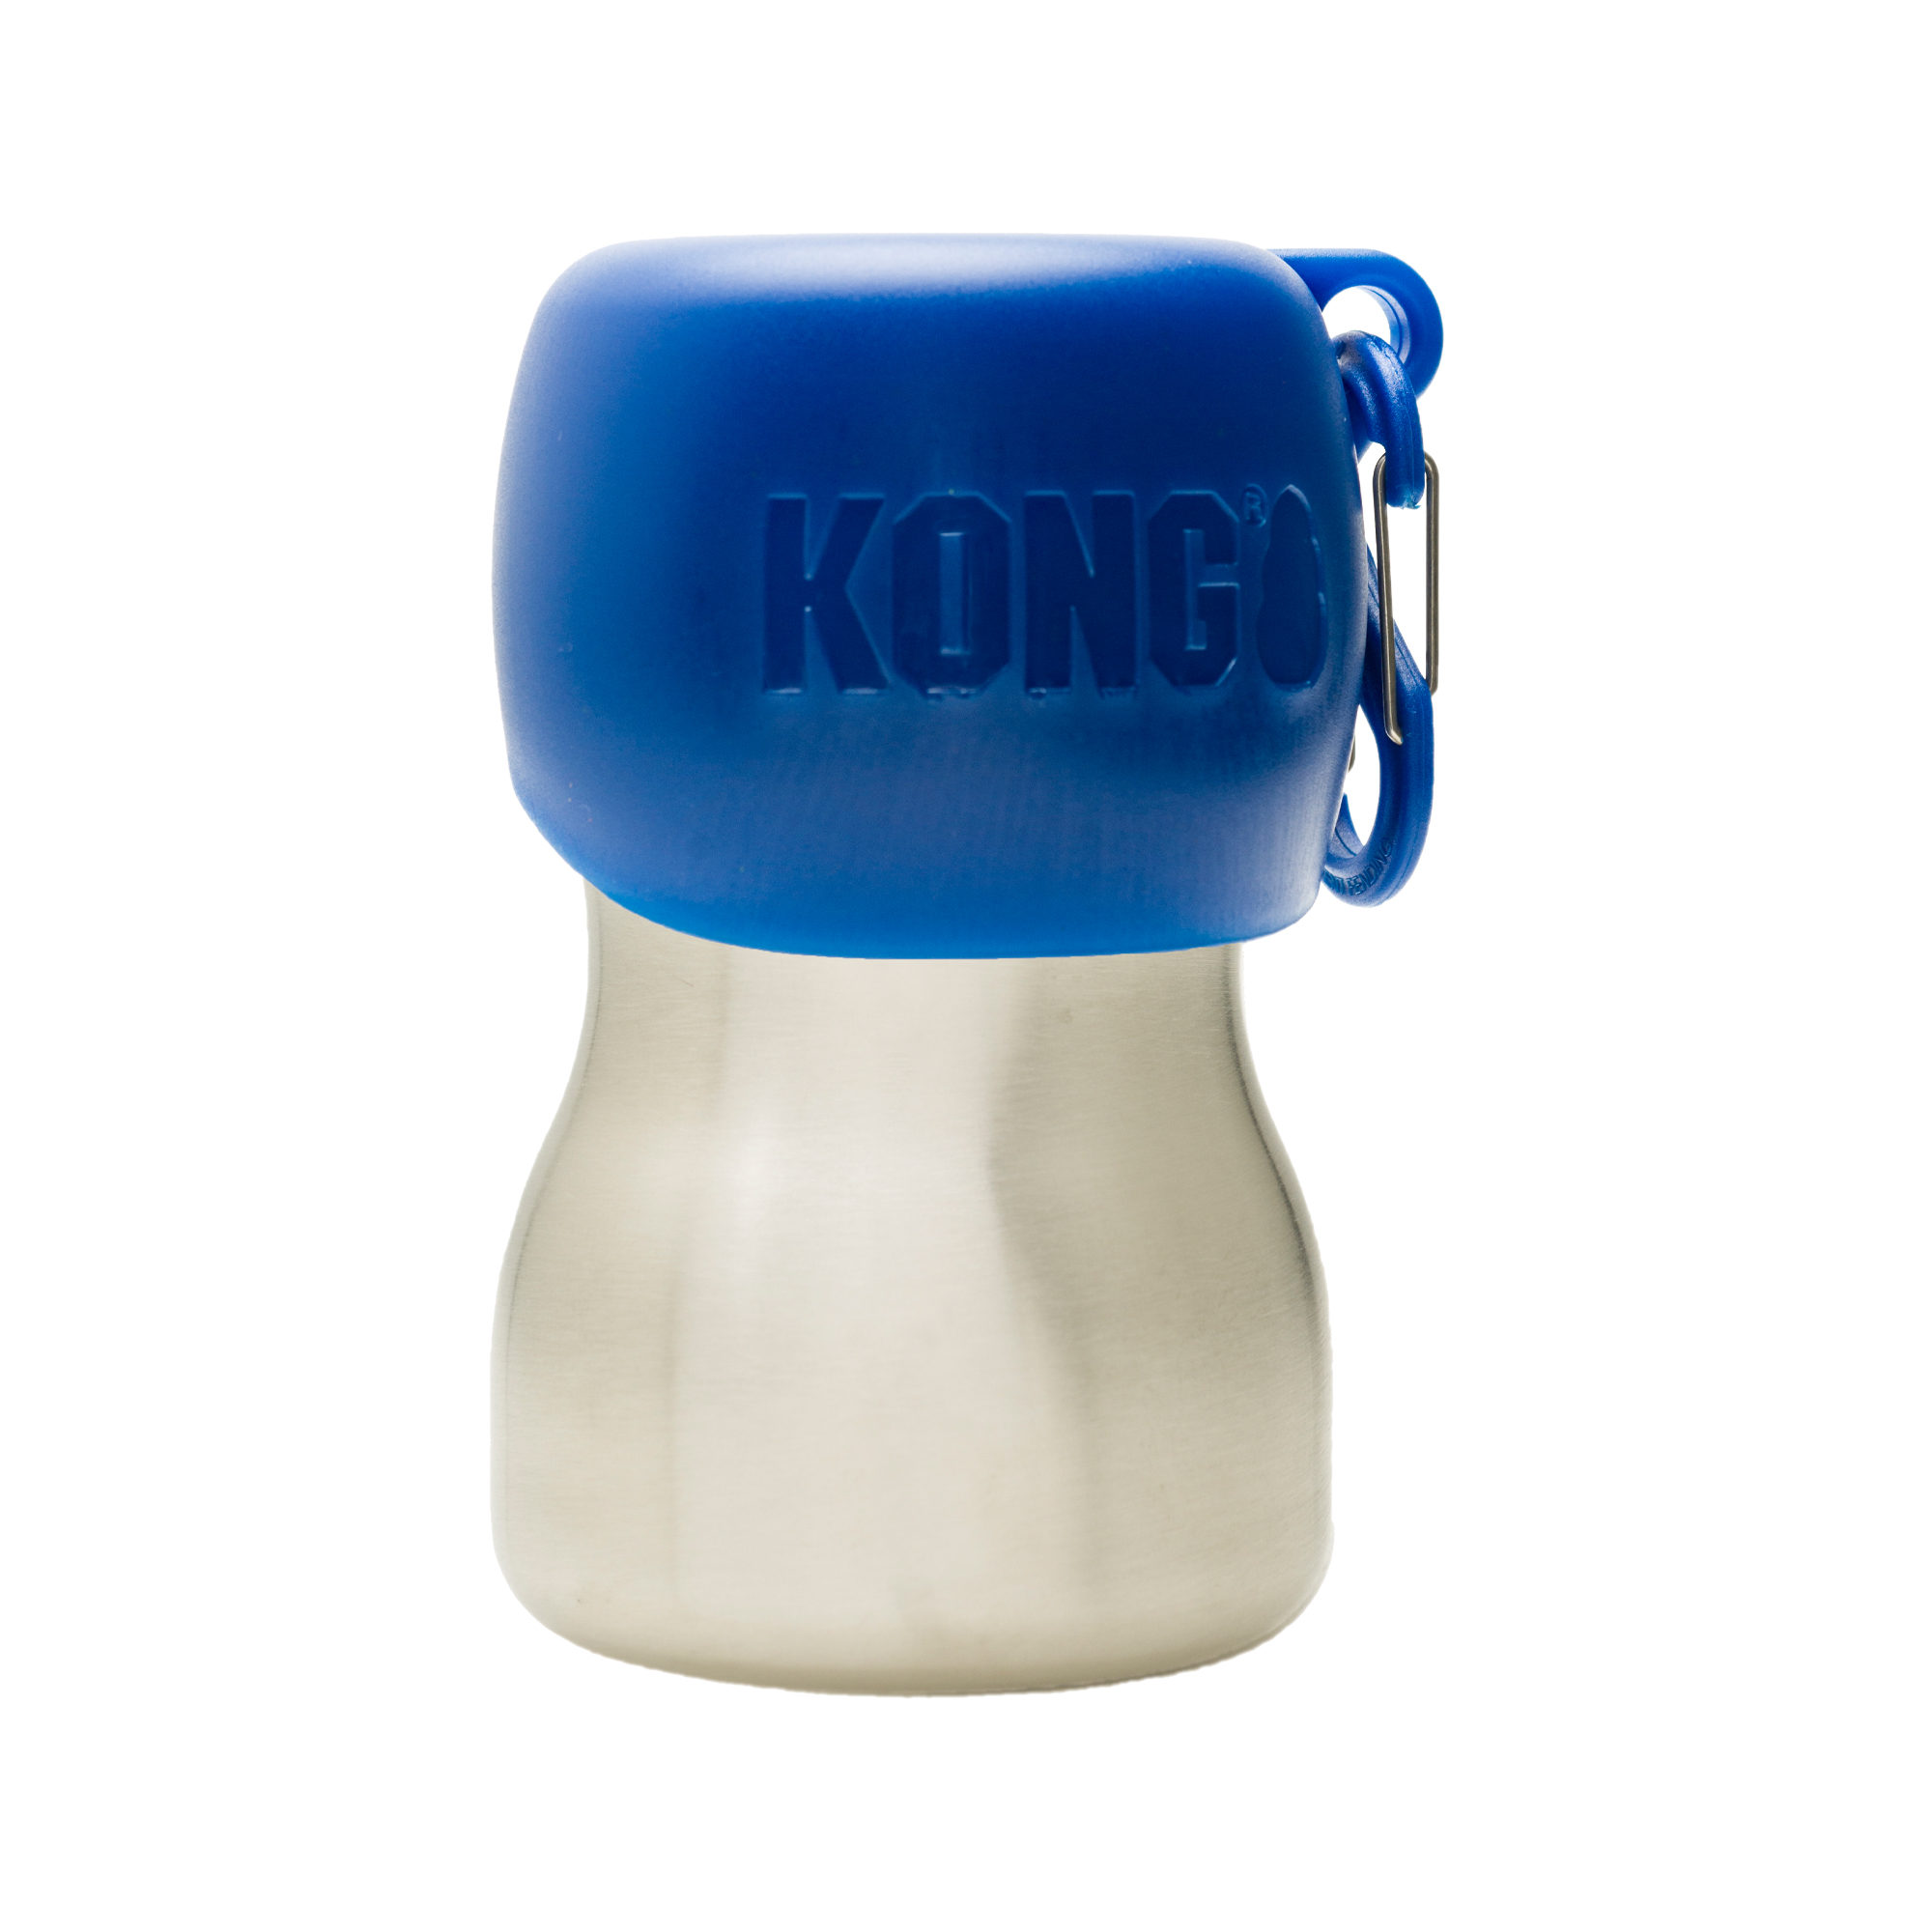 KONG H2O Stainless Steel Water Bottle - Blau